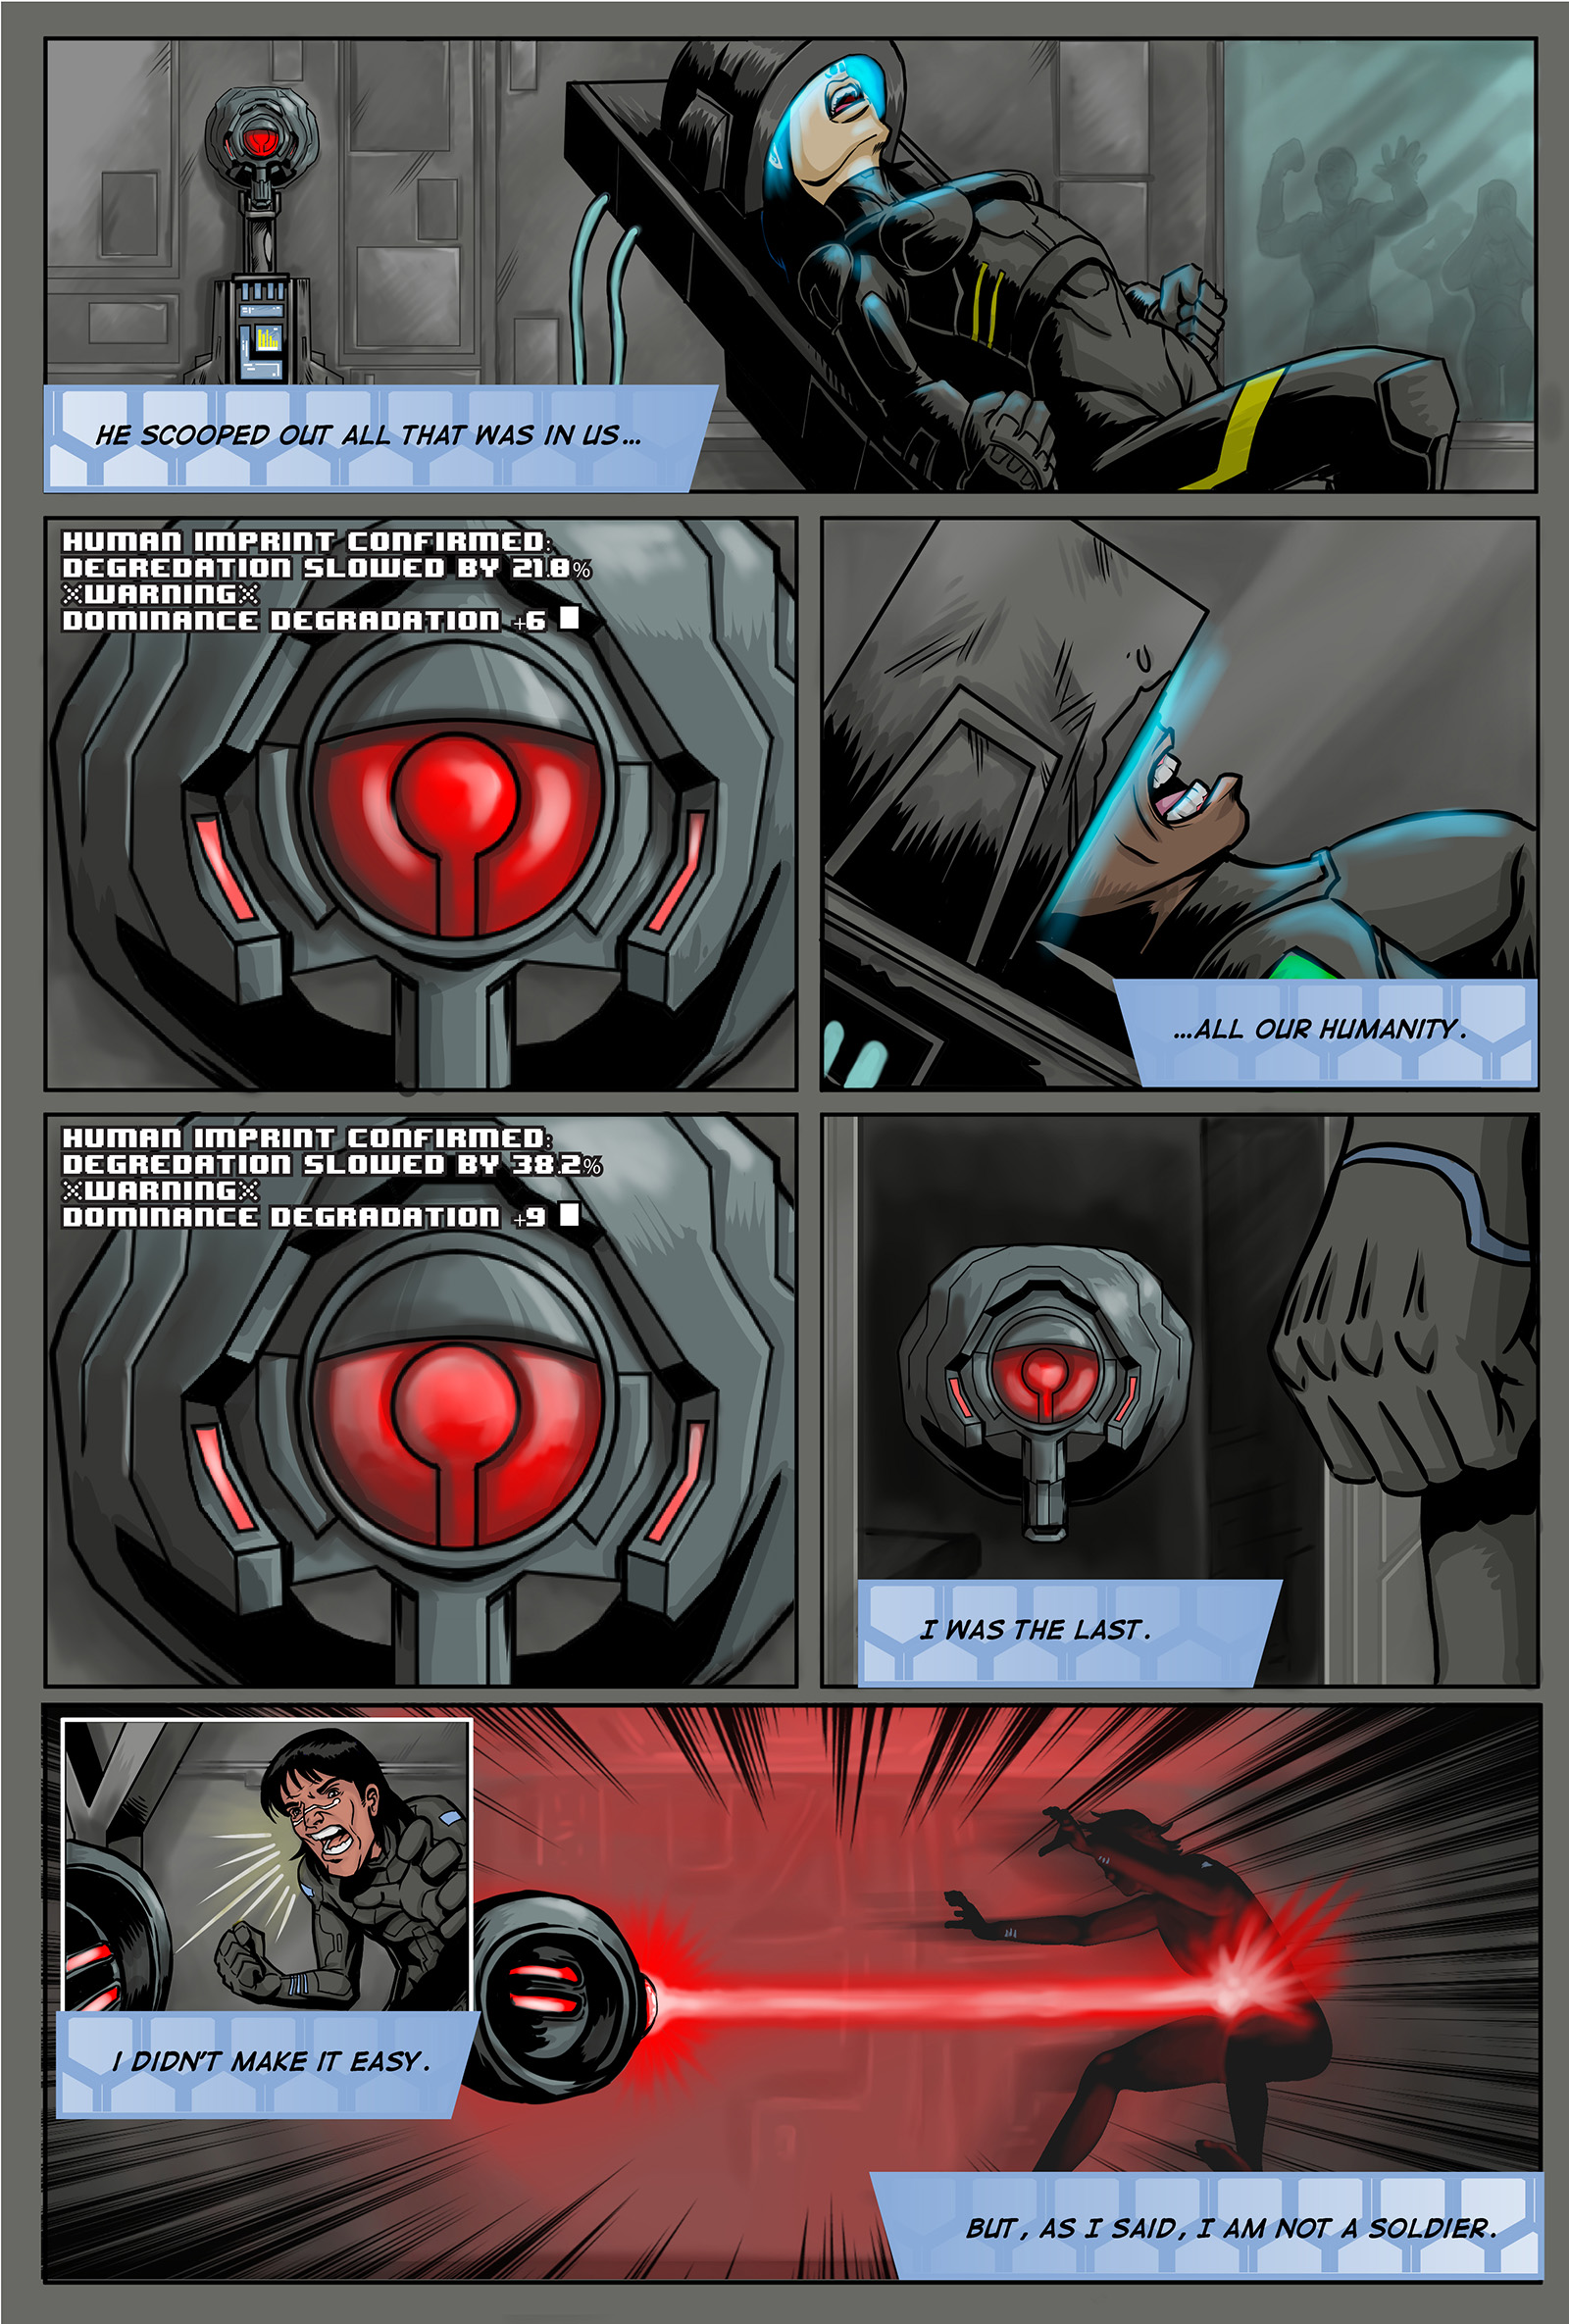 581 - A HALO Story from the 405th - Page 5.jpg